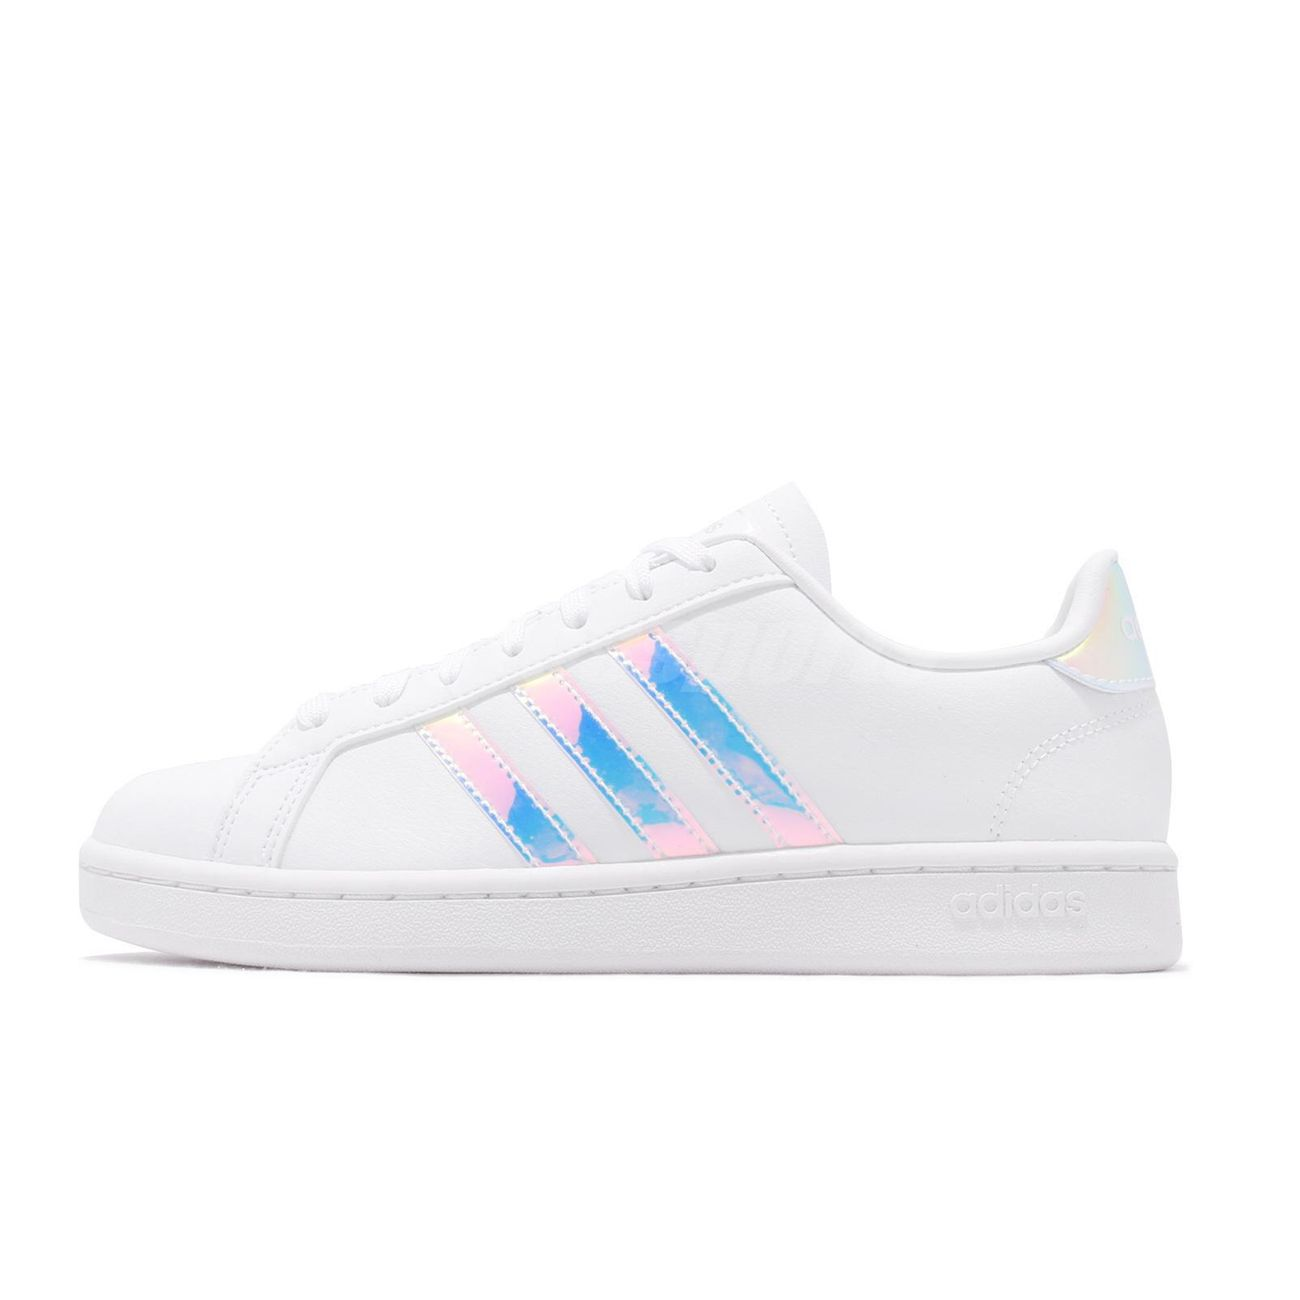 adidas grand court homme blanche